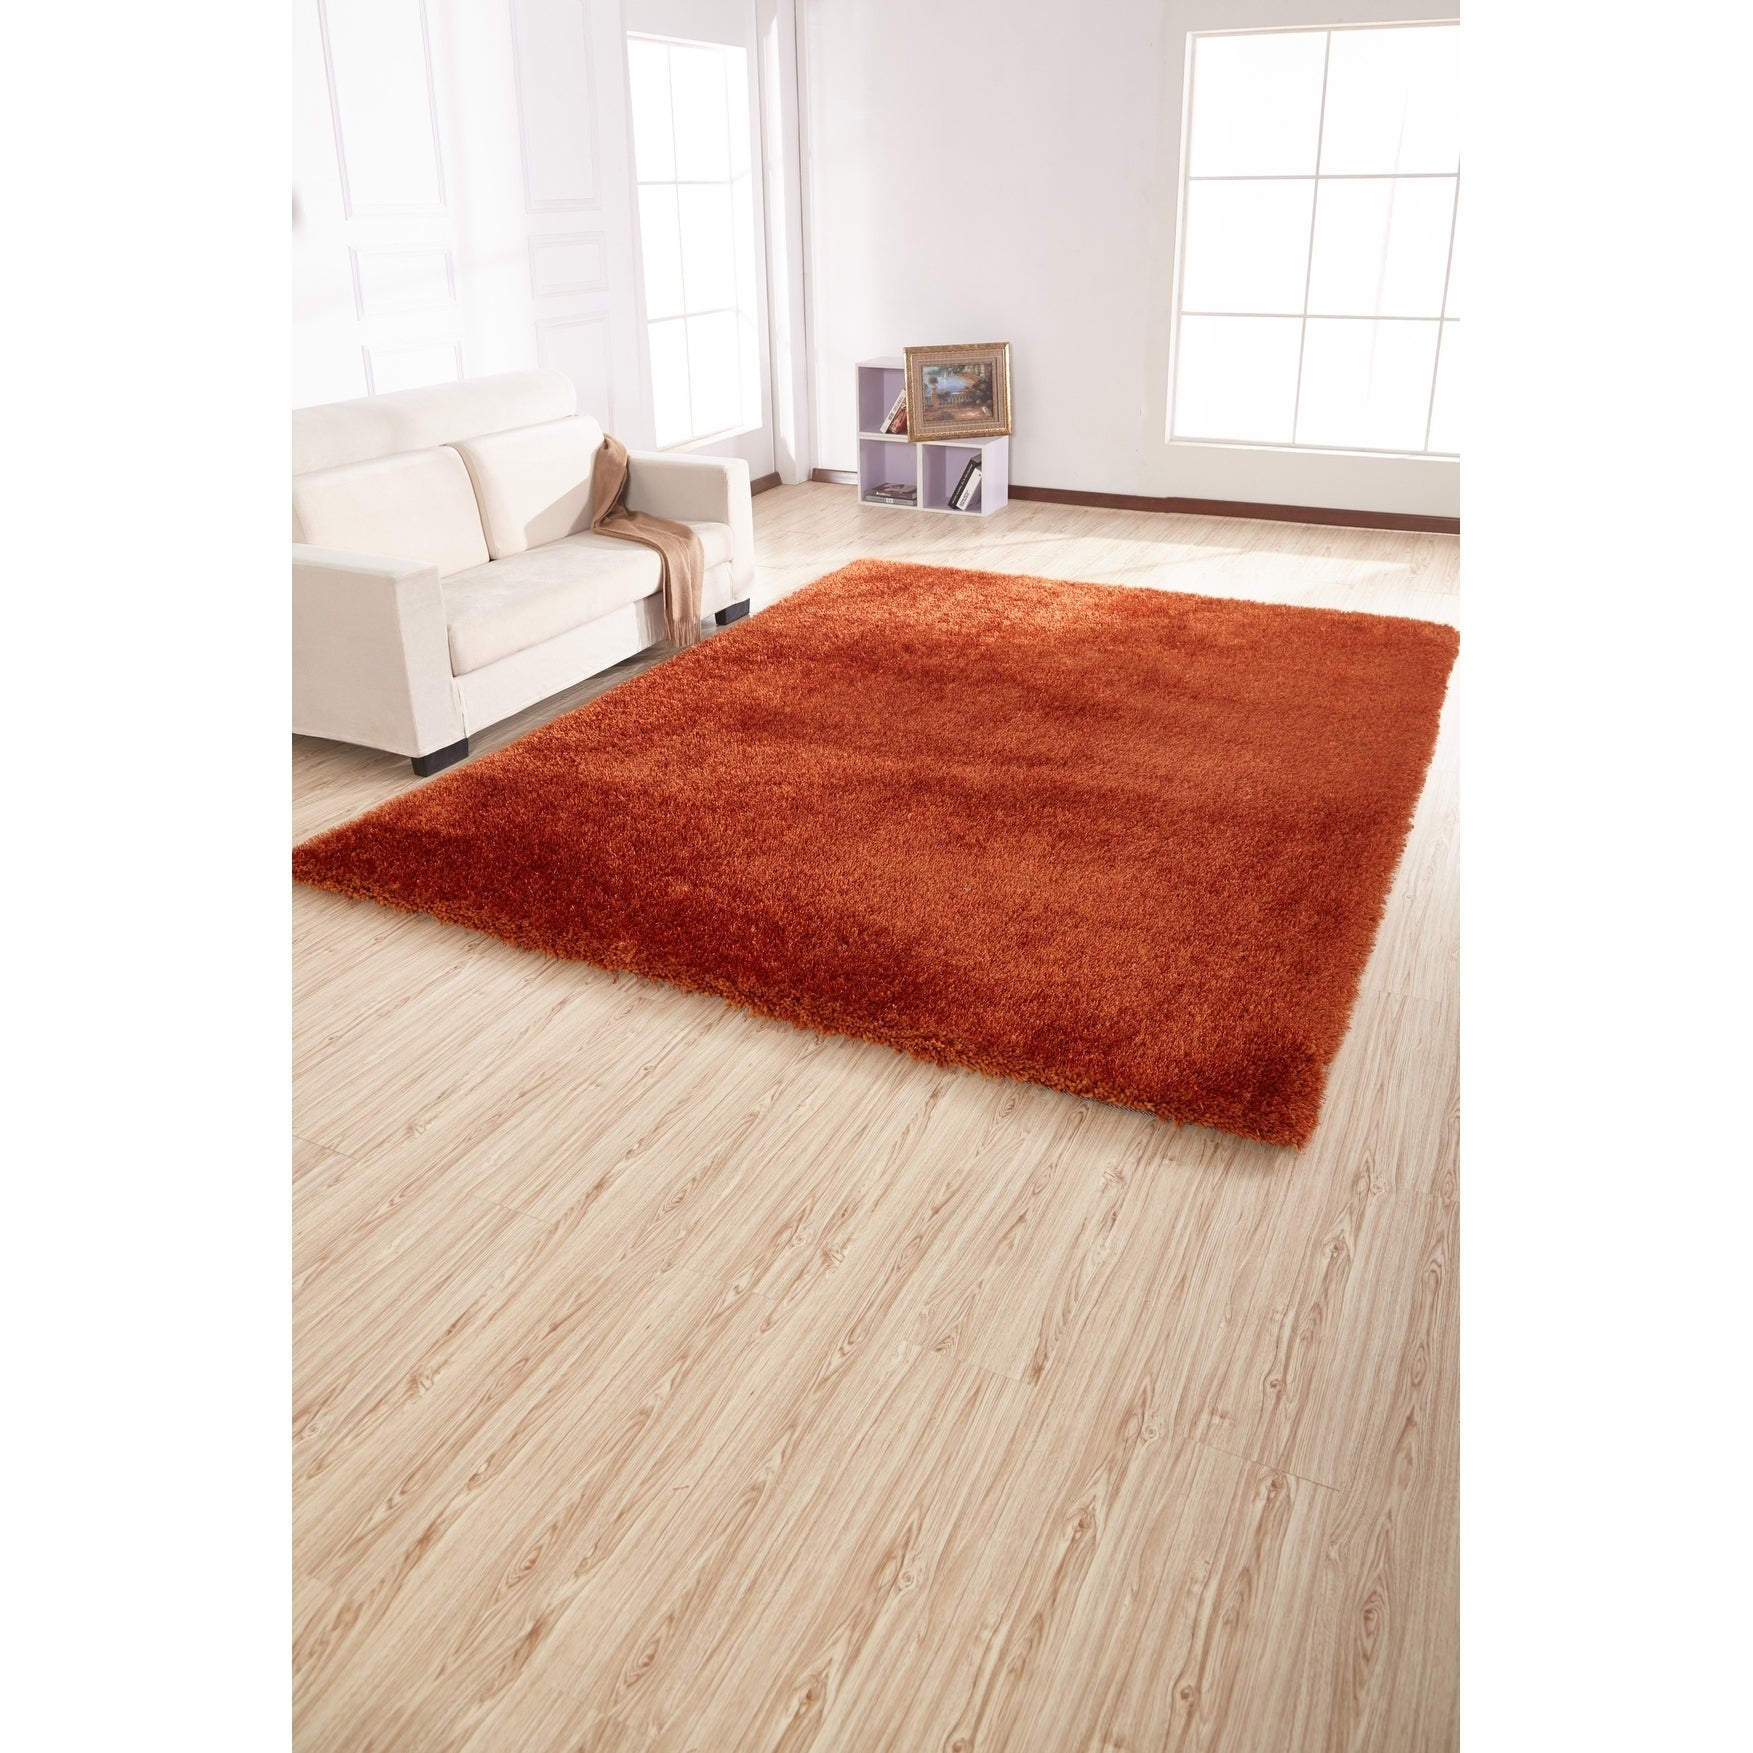 2 Inch Thickness Pile Hand Tufted Solid Orange Shag Area Rug